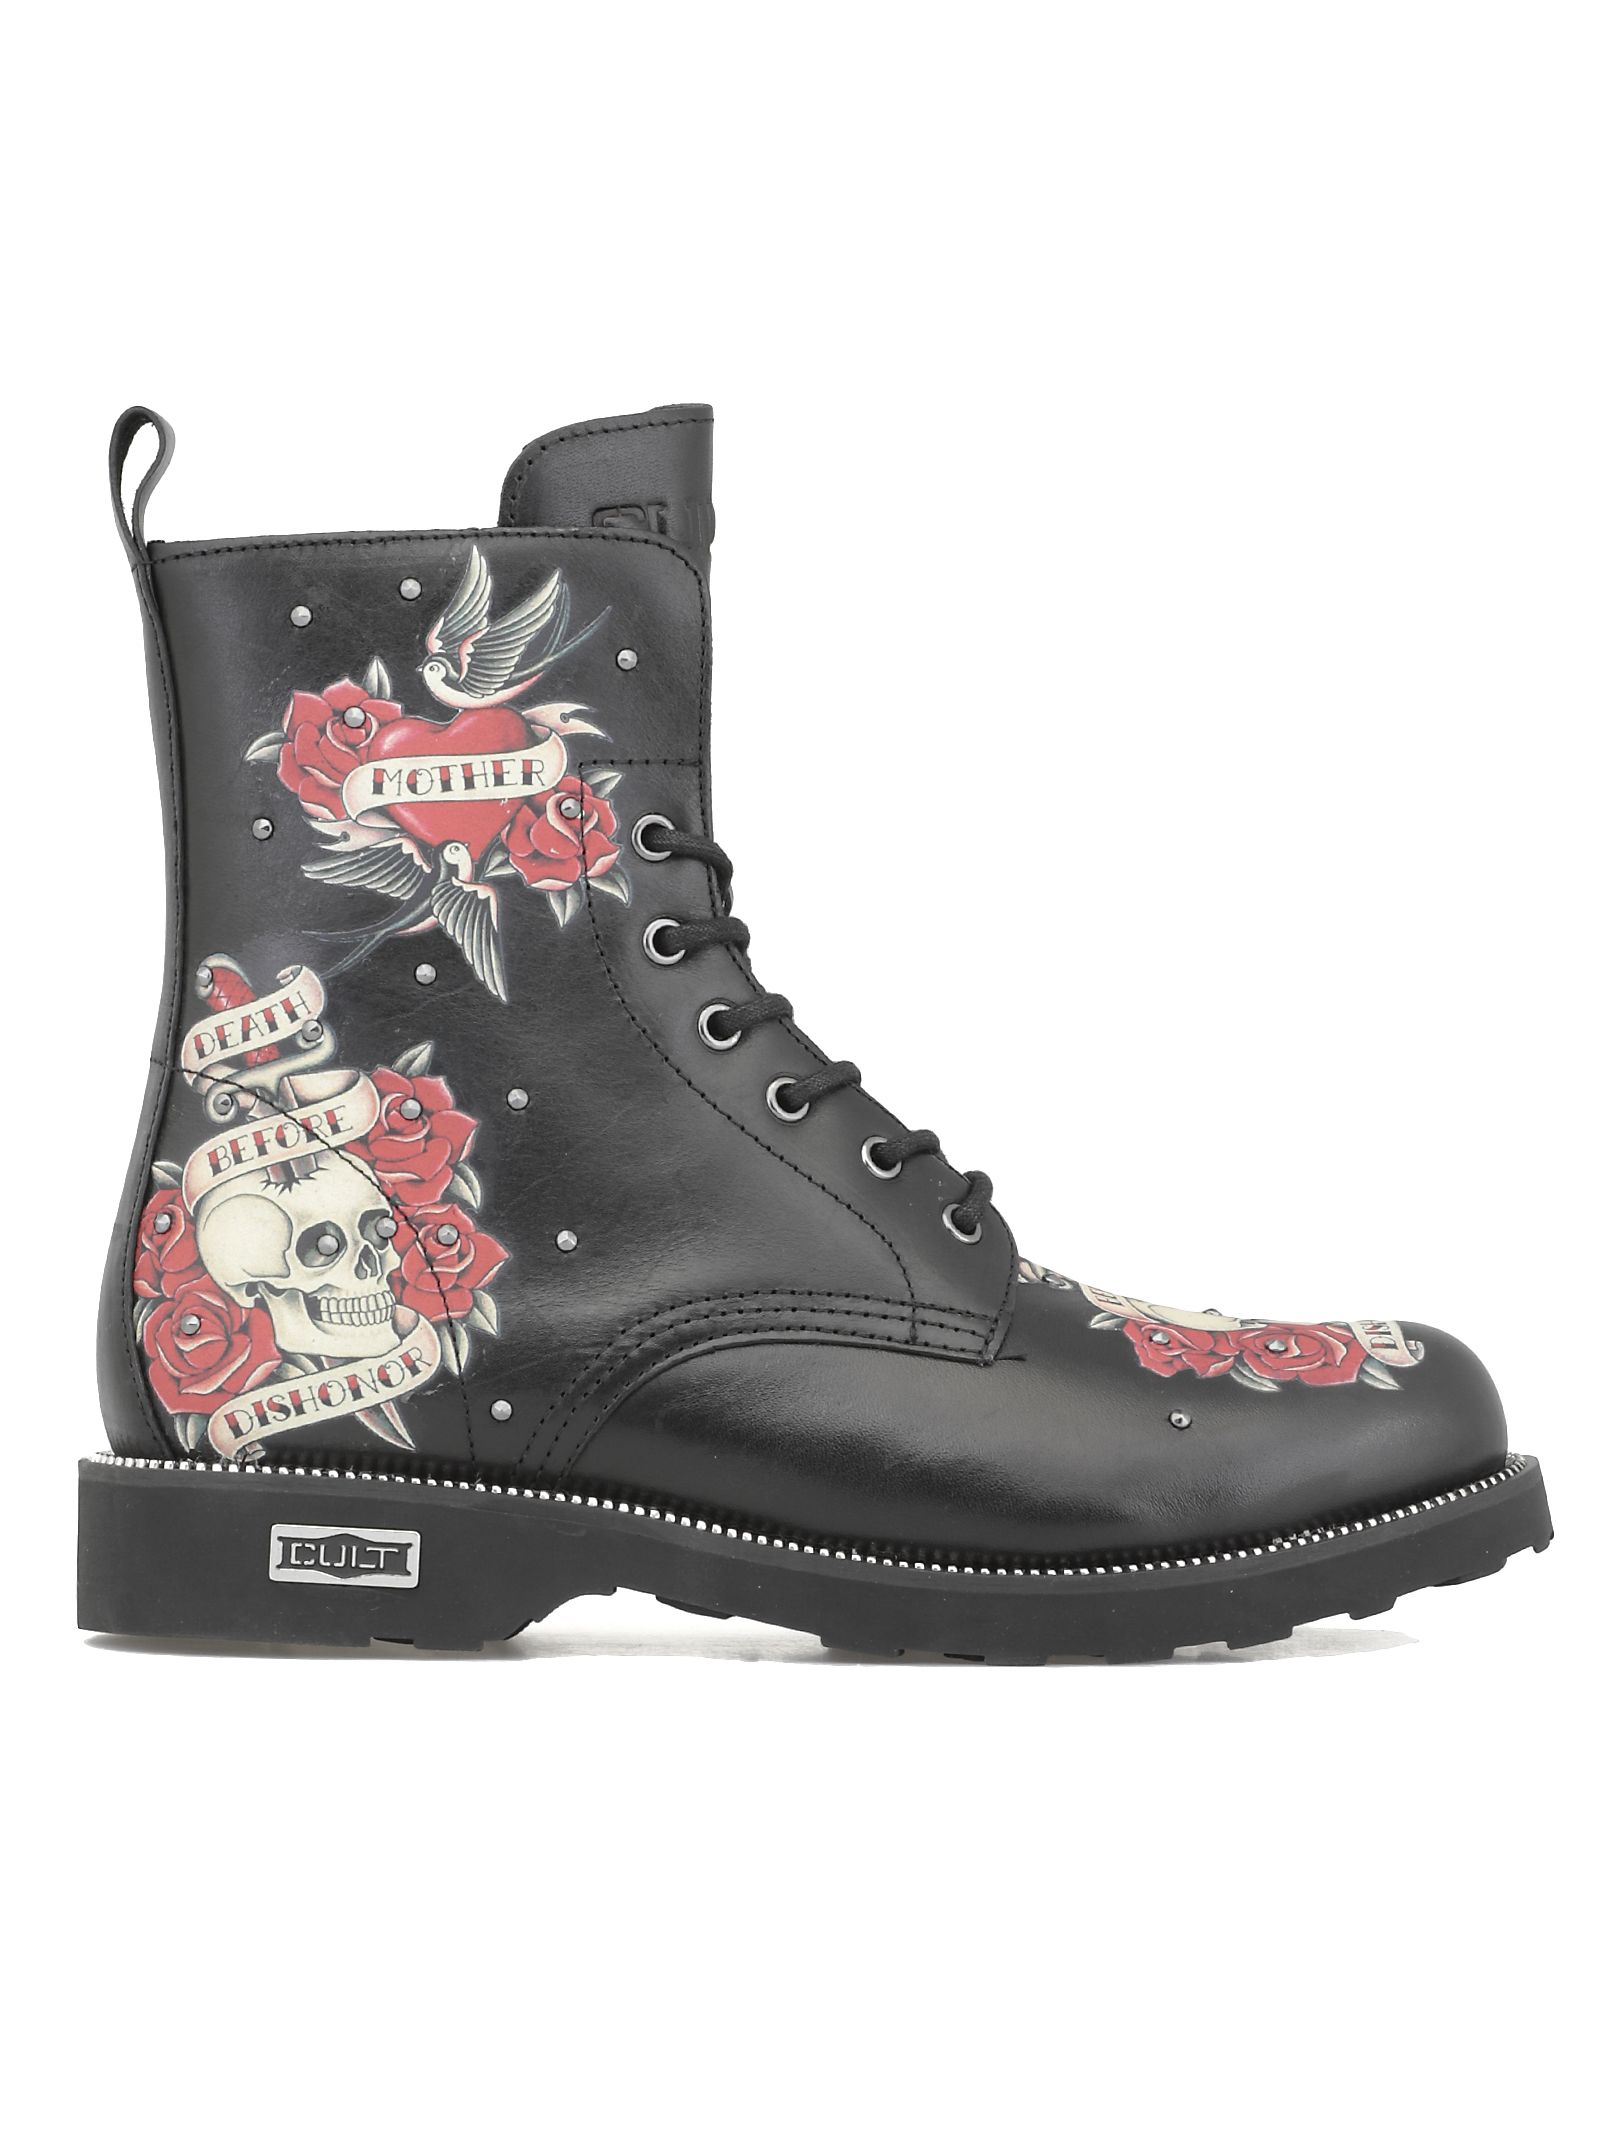 CULT Zeppelin Mid 2712 Army Boots in Black